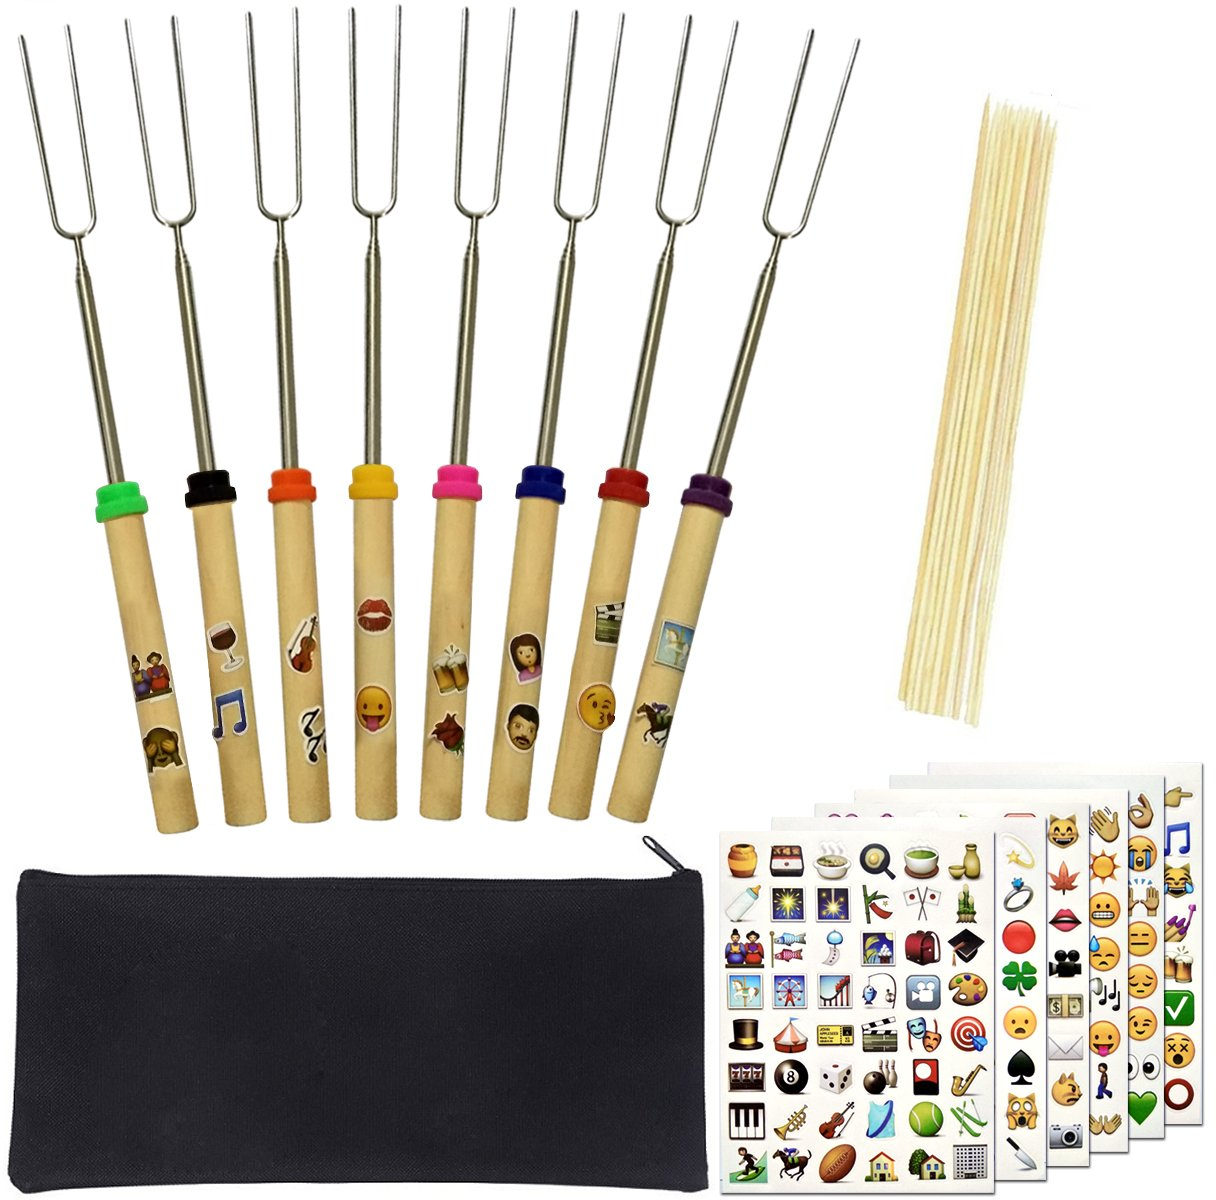 Besokuse Barbecue Skewers Marshmallow Roasting Sticks Wooden Handle extending Meat Hot Dog Fork BBQ Camping Cookware Campfire Grill Cooking Camping Picnic